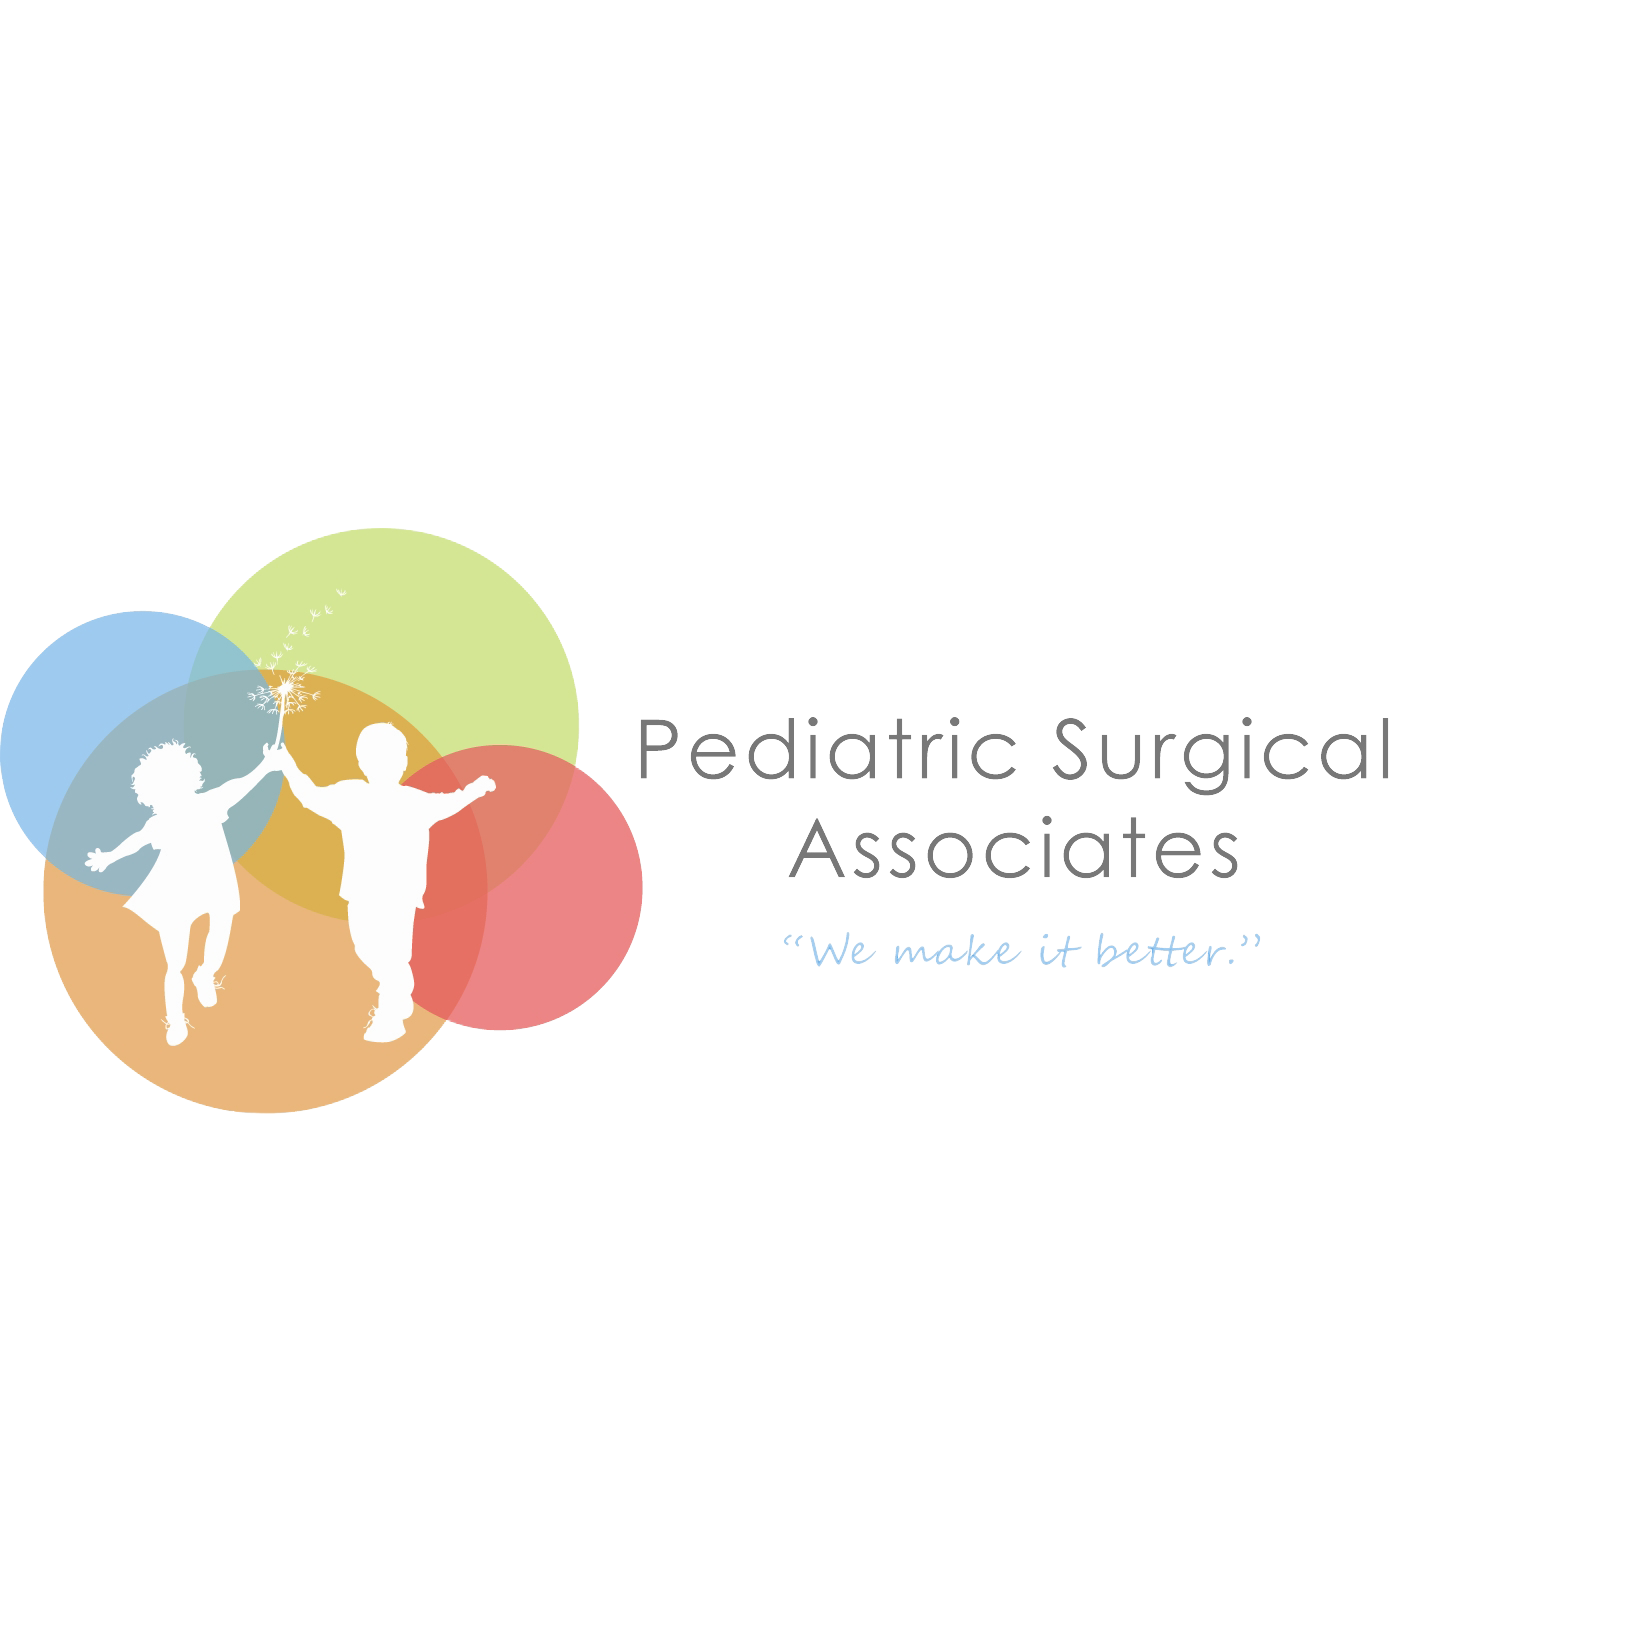 Pediatric Surgical Associates